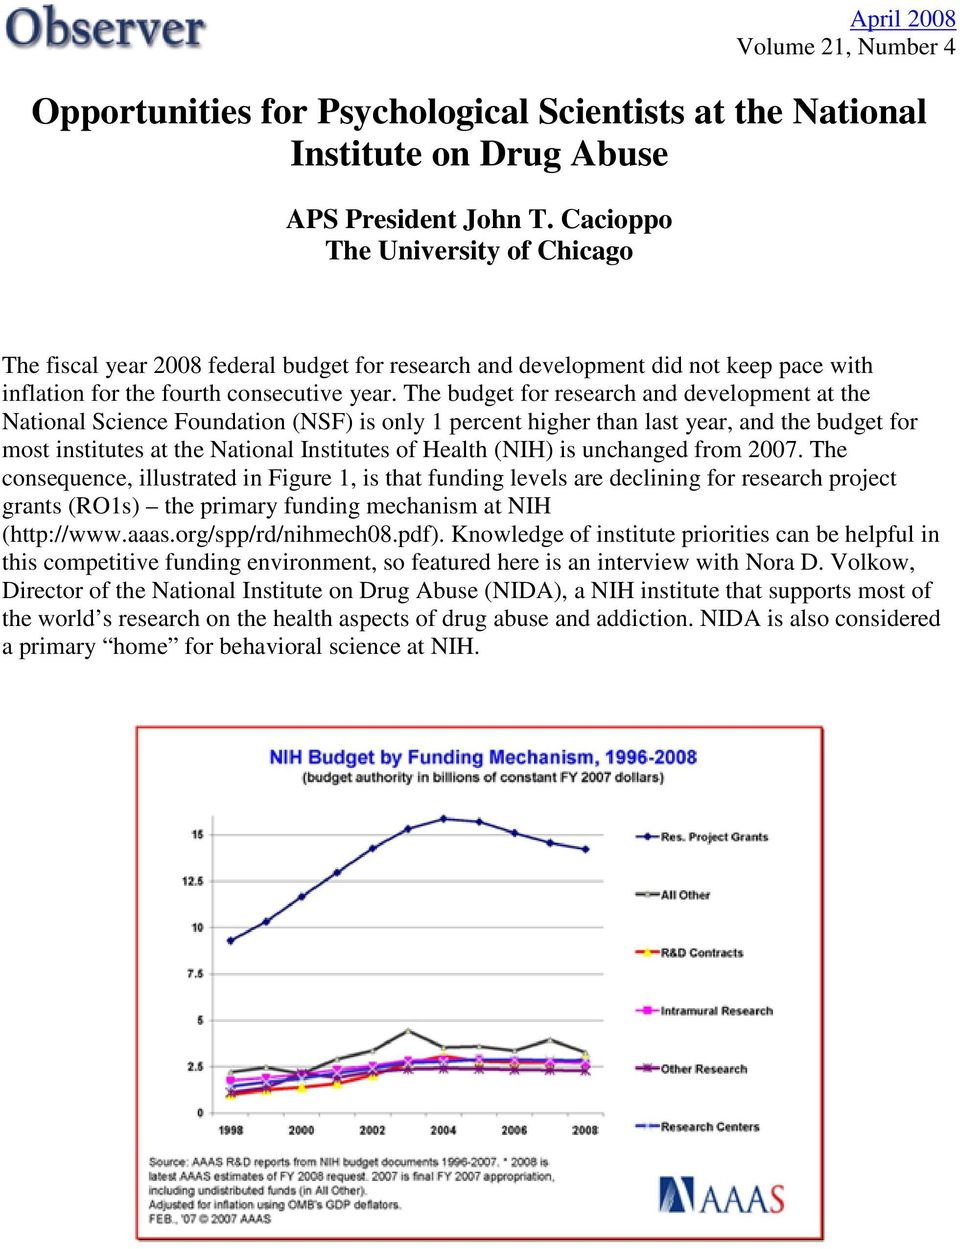 The budget for research and development at the National Science Foundation (NSF) is only 1 percent higher than last year, and the budget for most institutes at the National Institutes of Health (NIH)